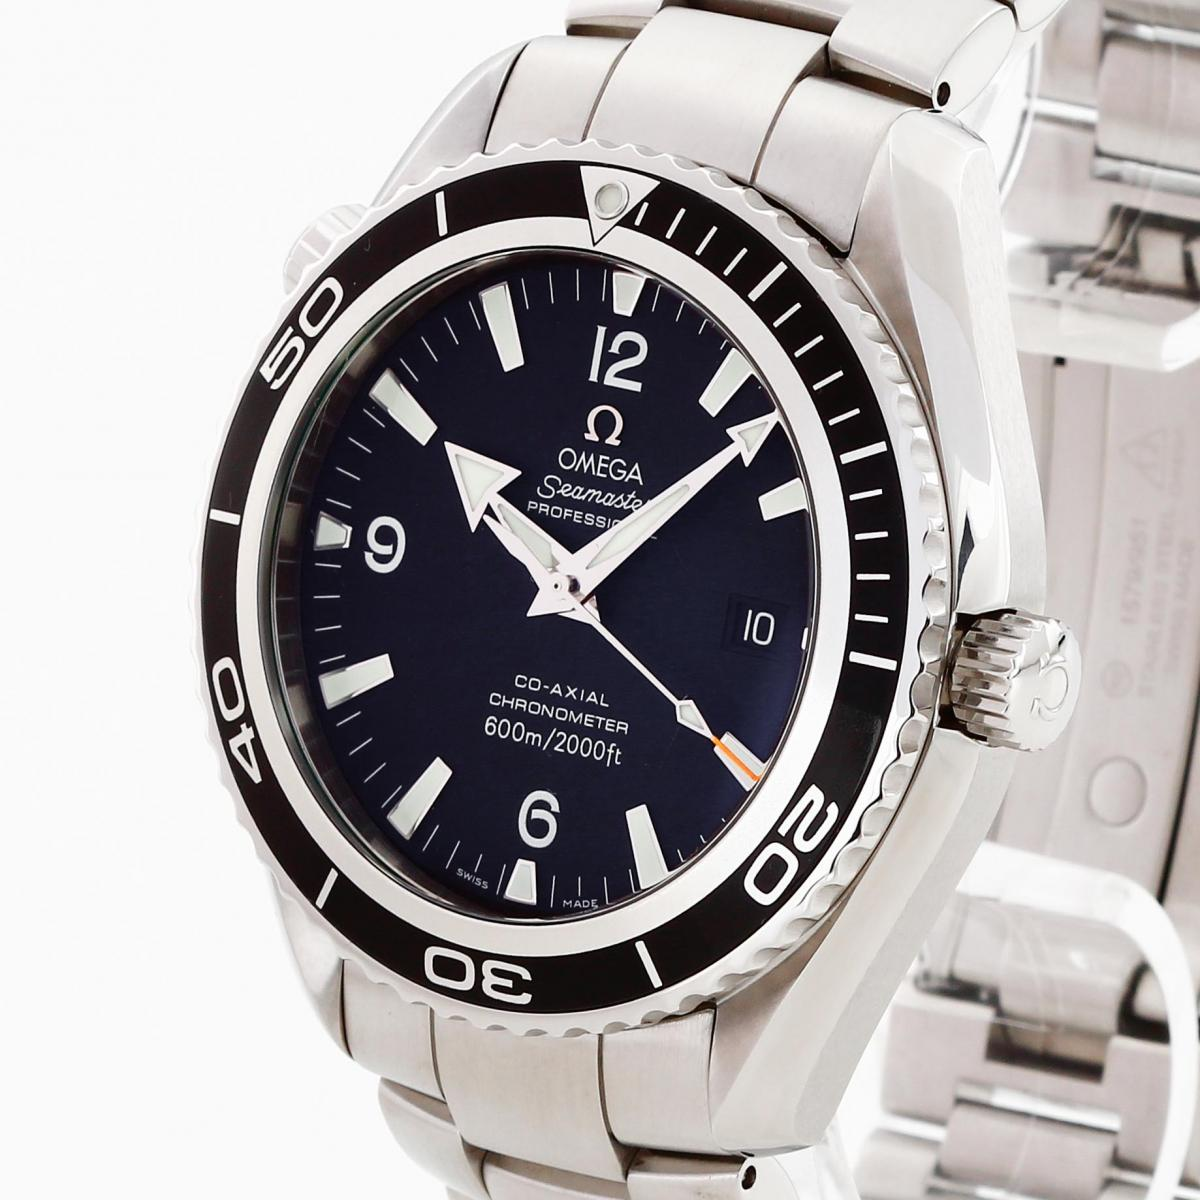 Omega Seamaster Planet Ocean Automatic Stainless Steel Ref 22005000